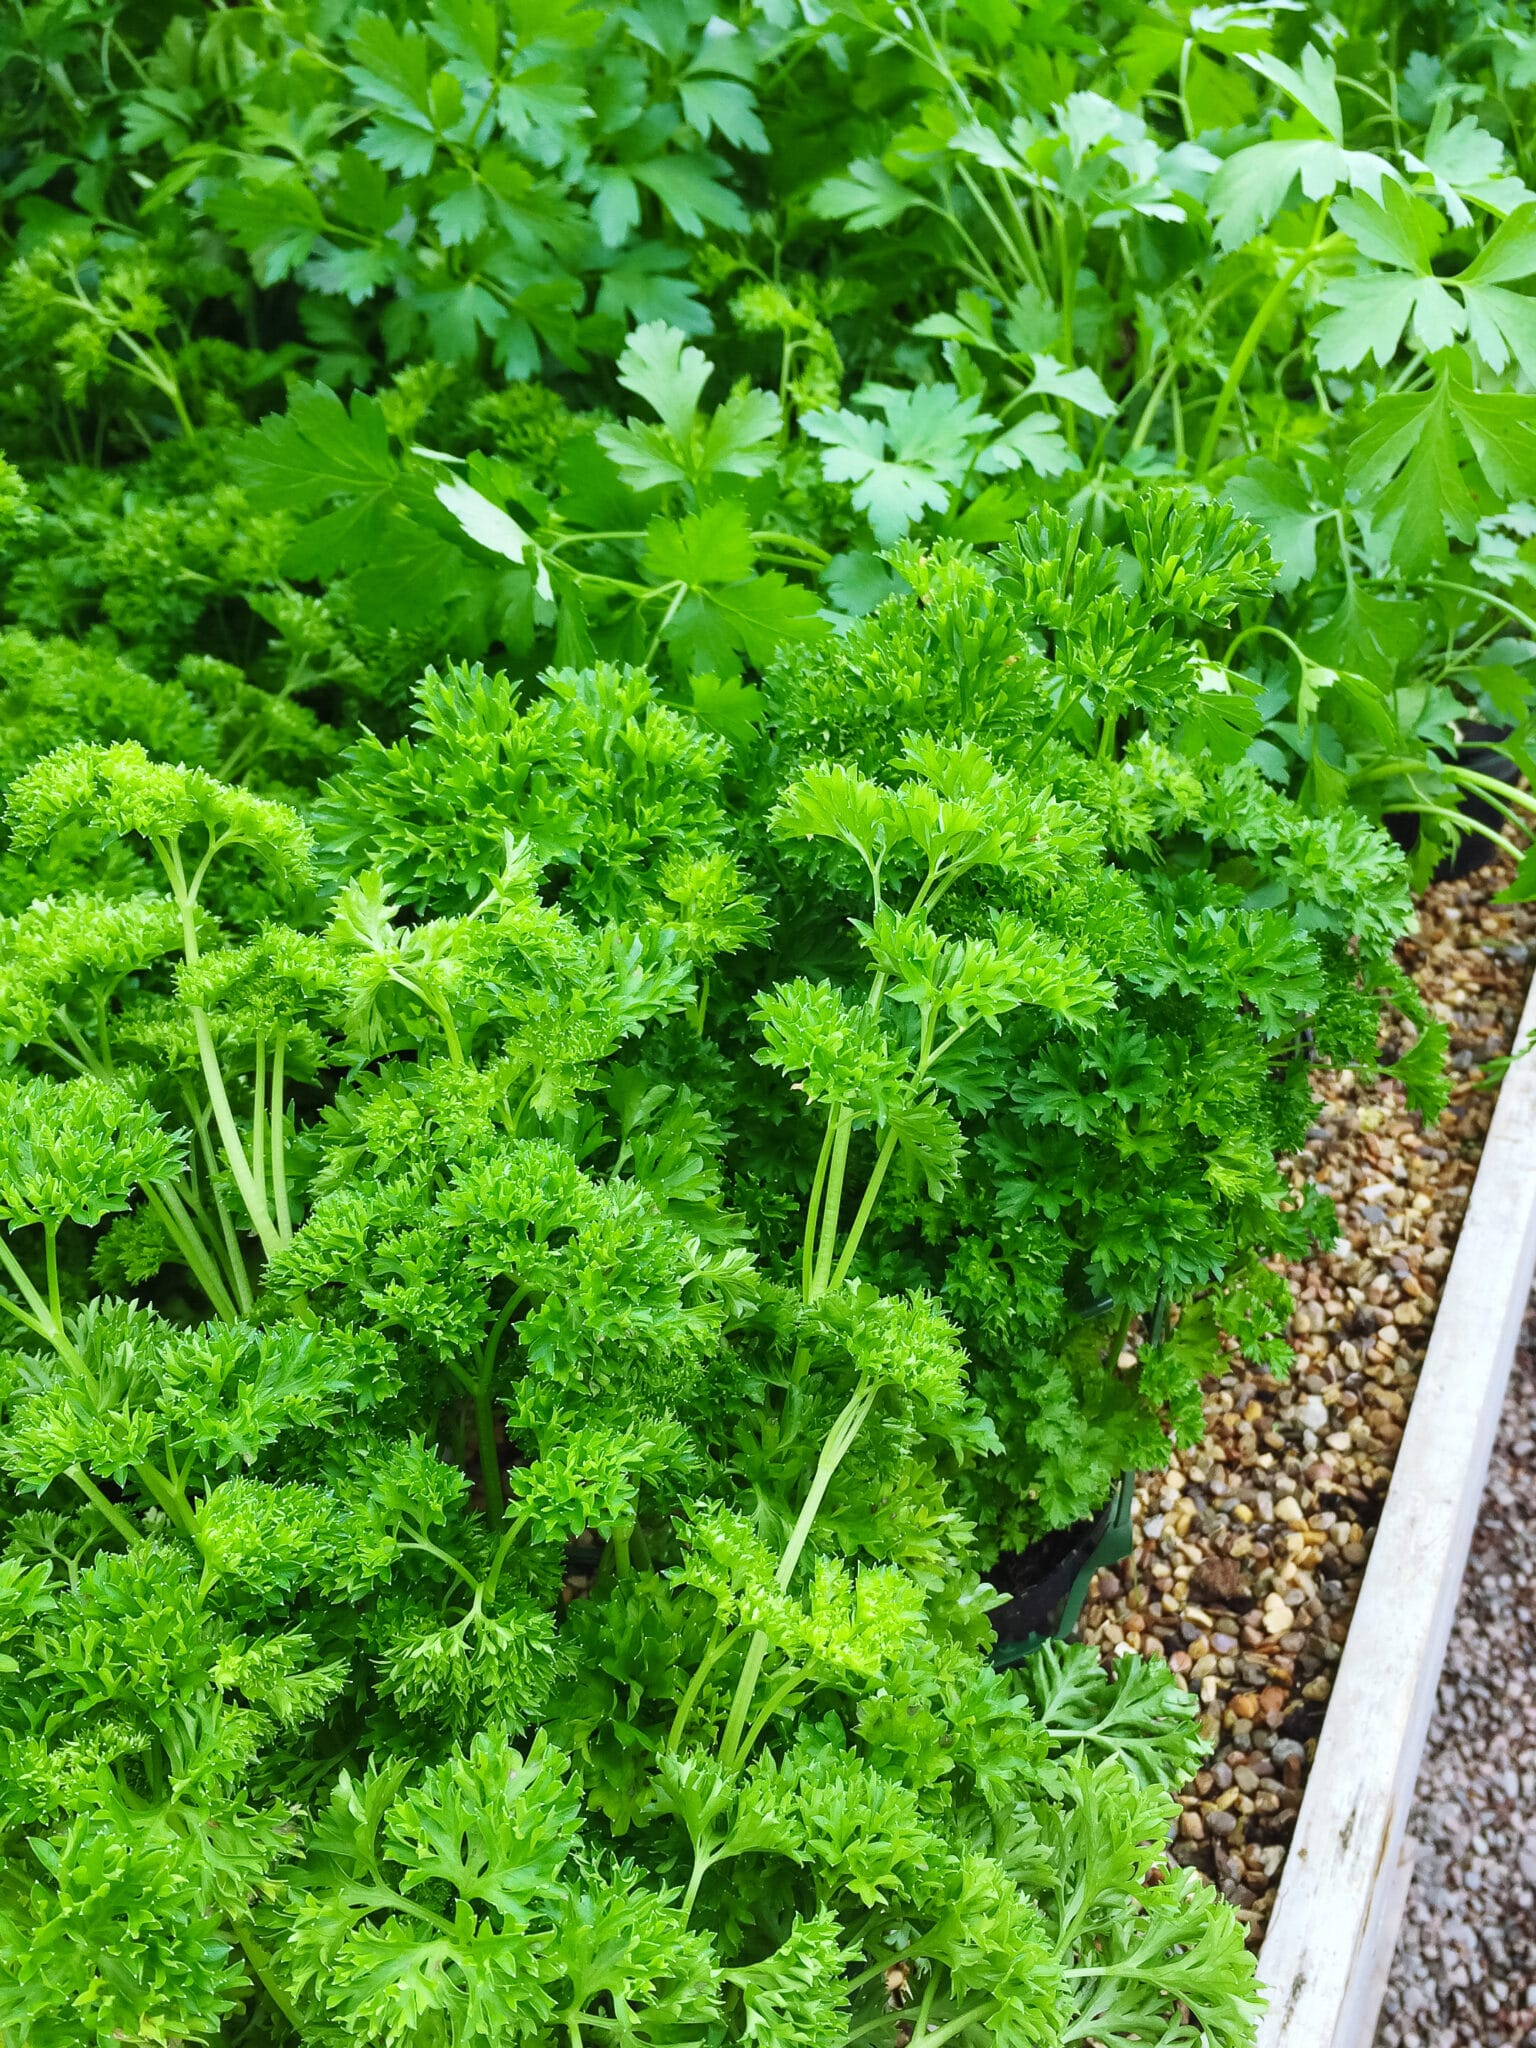 Curly and Italian parsley growing in pots. Summer vegetable garden.